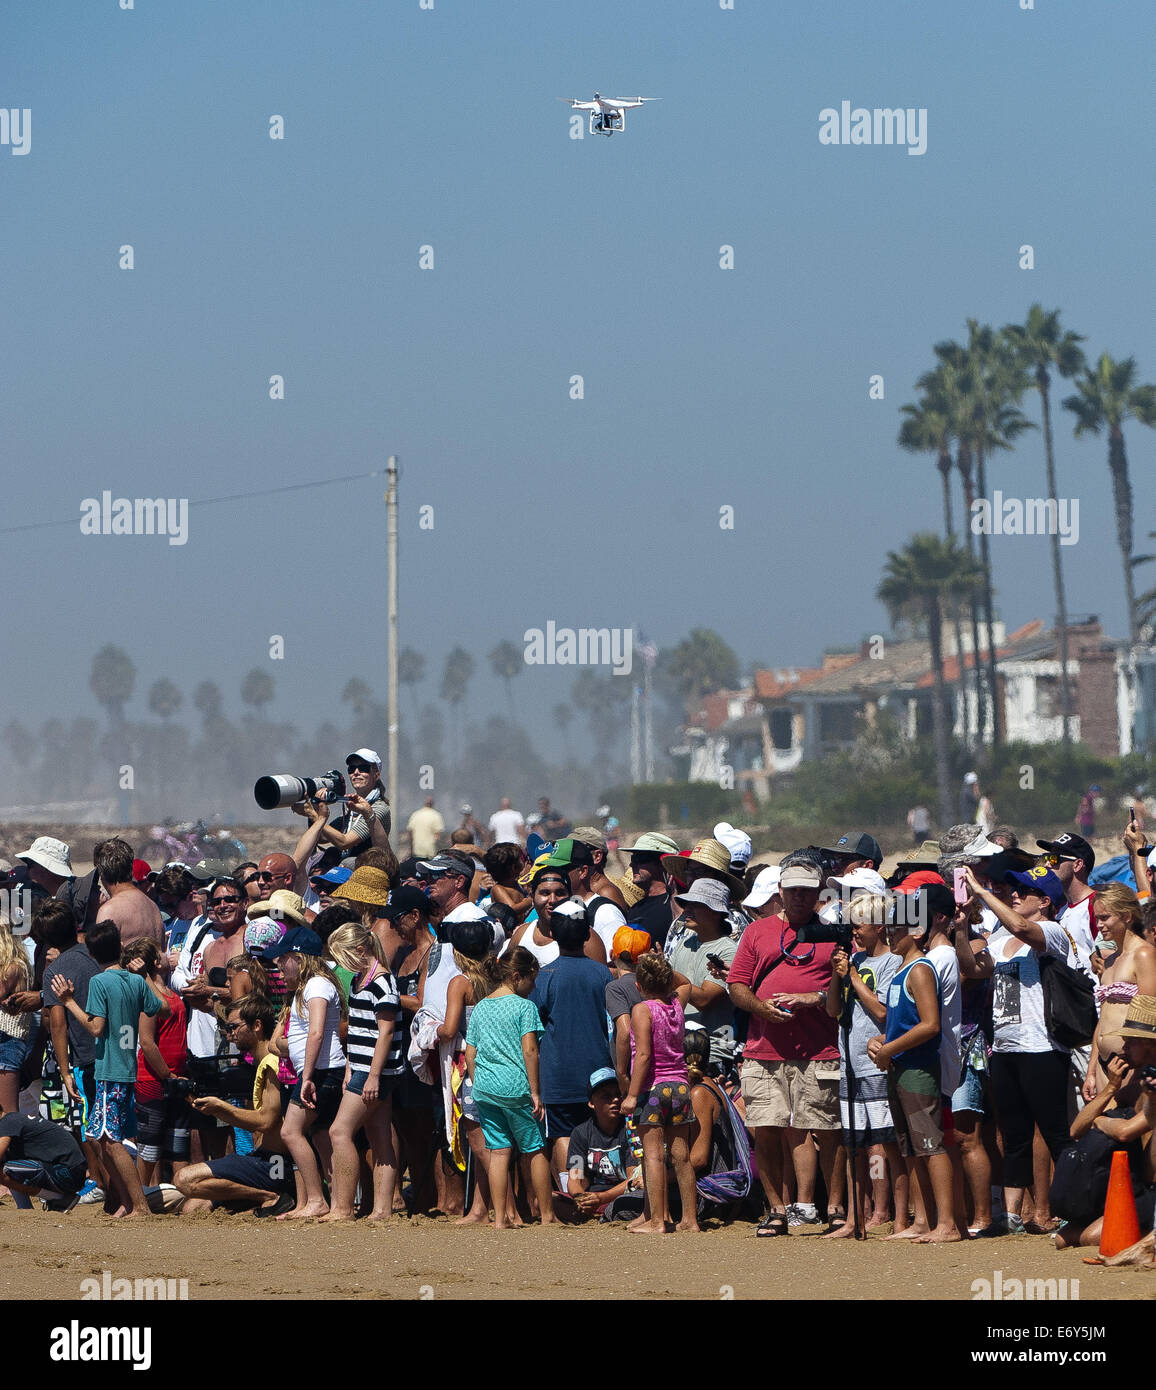 Newport Beach, California, USA. 27th Aug, 2014. A quadcopter drone equipped with camera equipment flies over a large - Stock Image